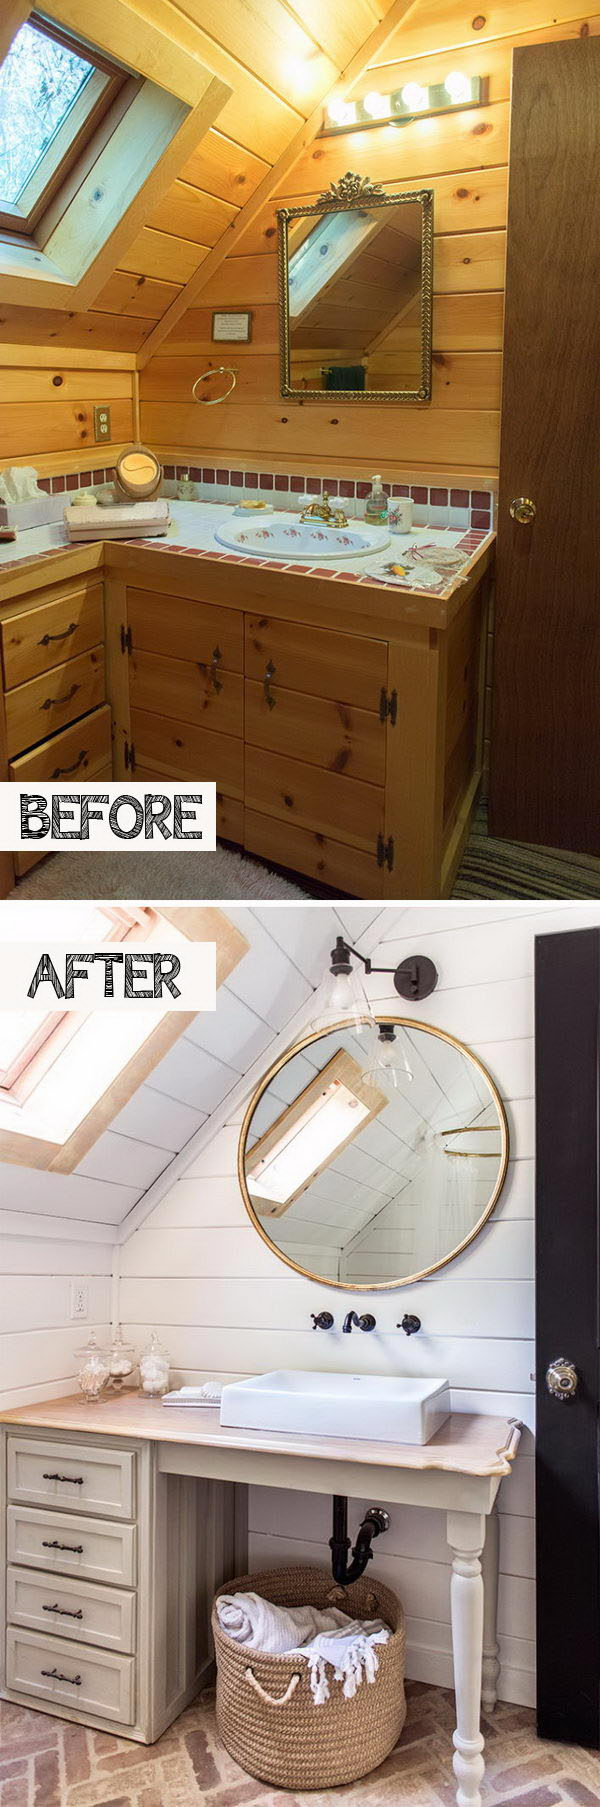 Give Your Attic Bath An Open And Airy Feeling With White Painting And The Sink On Legs.